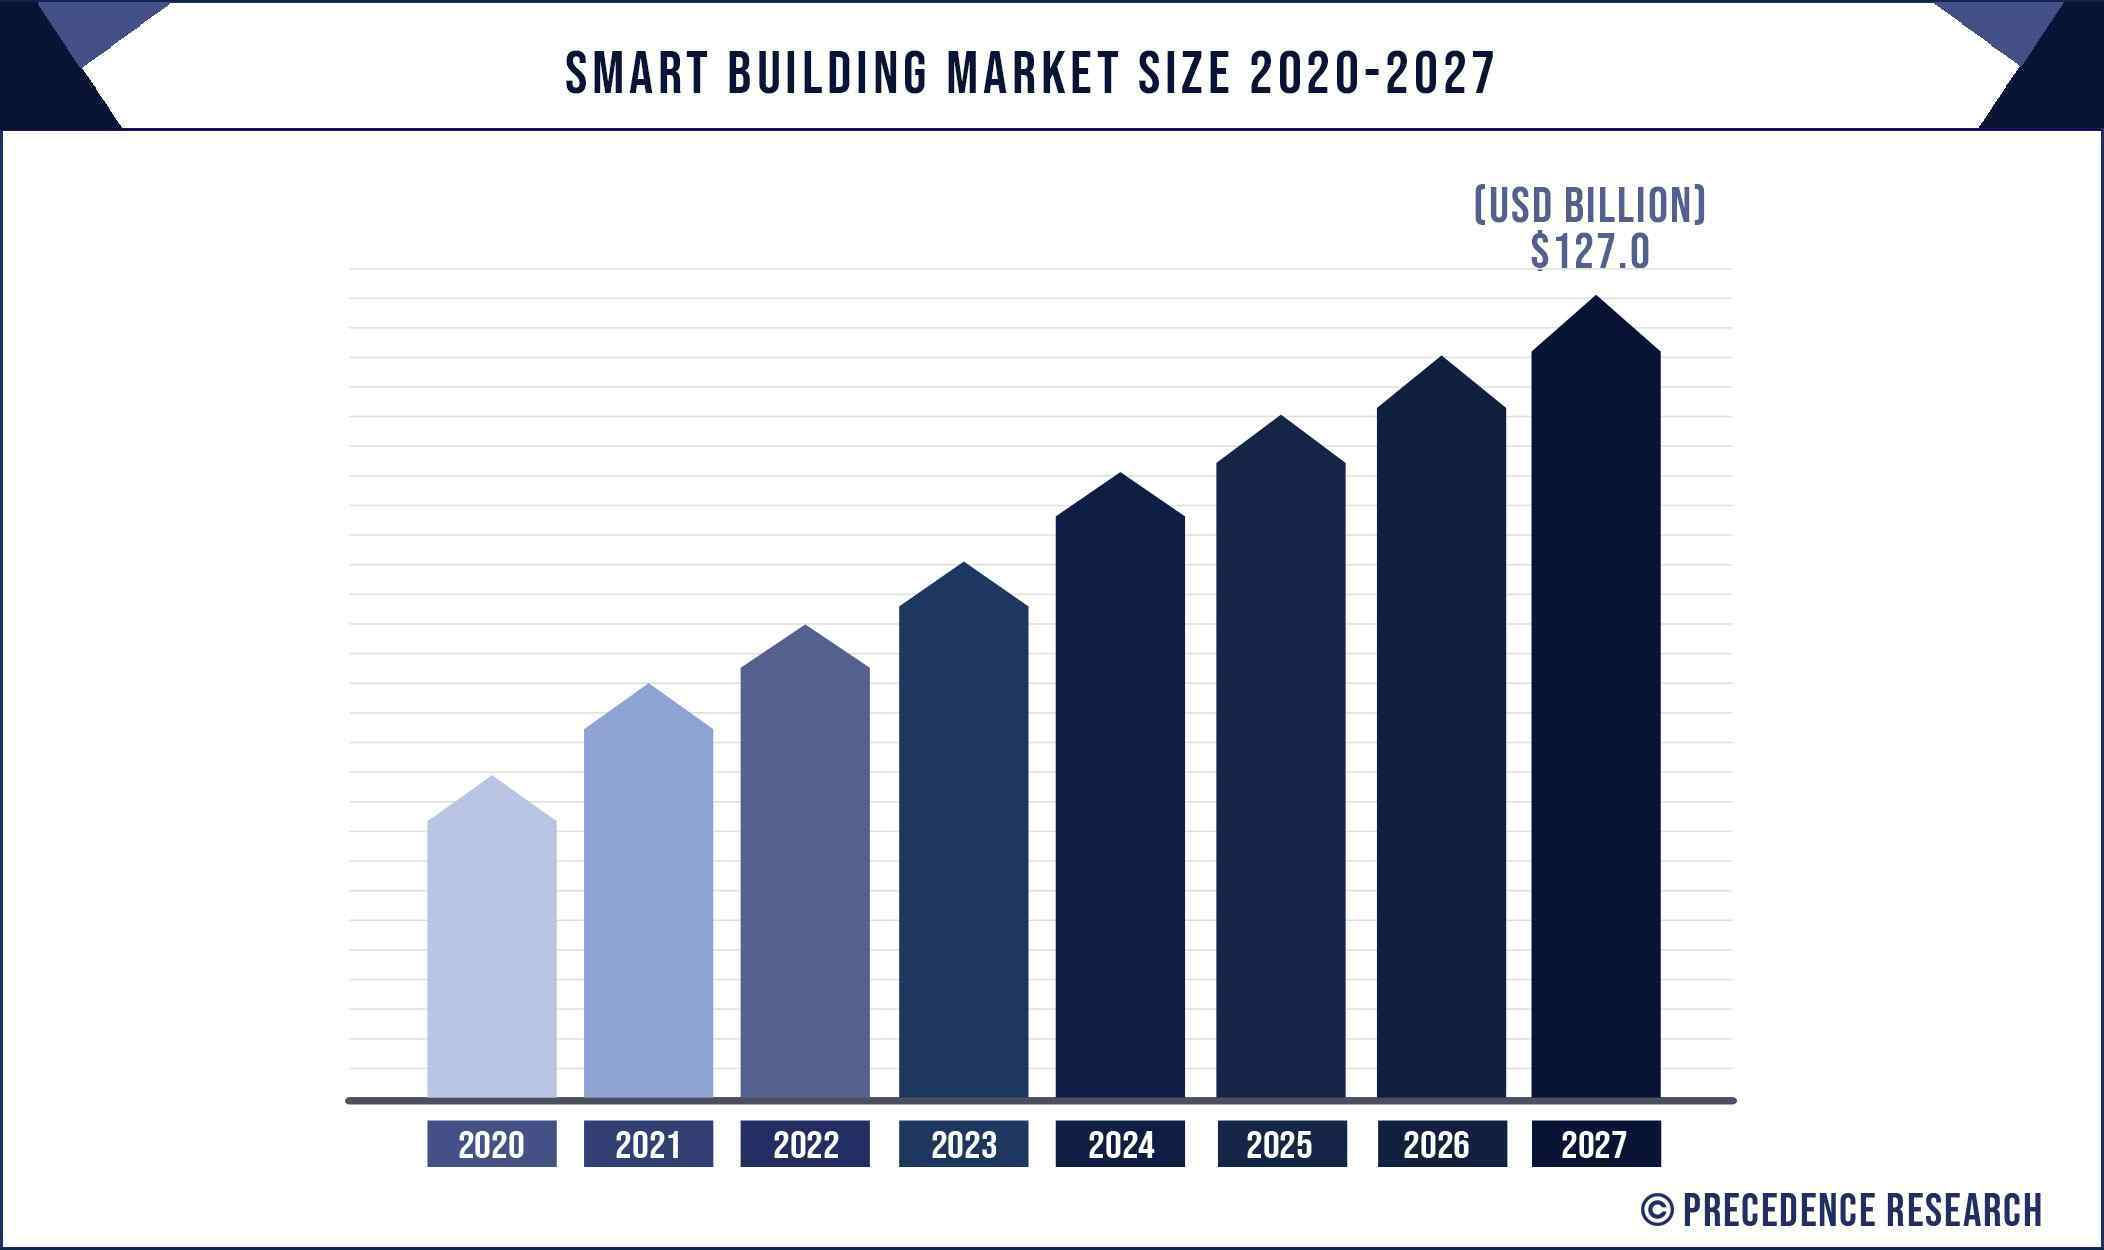 Smart Building Market Size 2020 To 2027